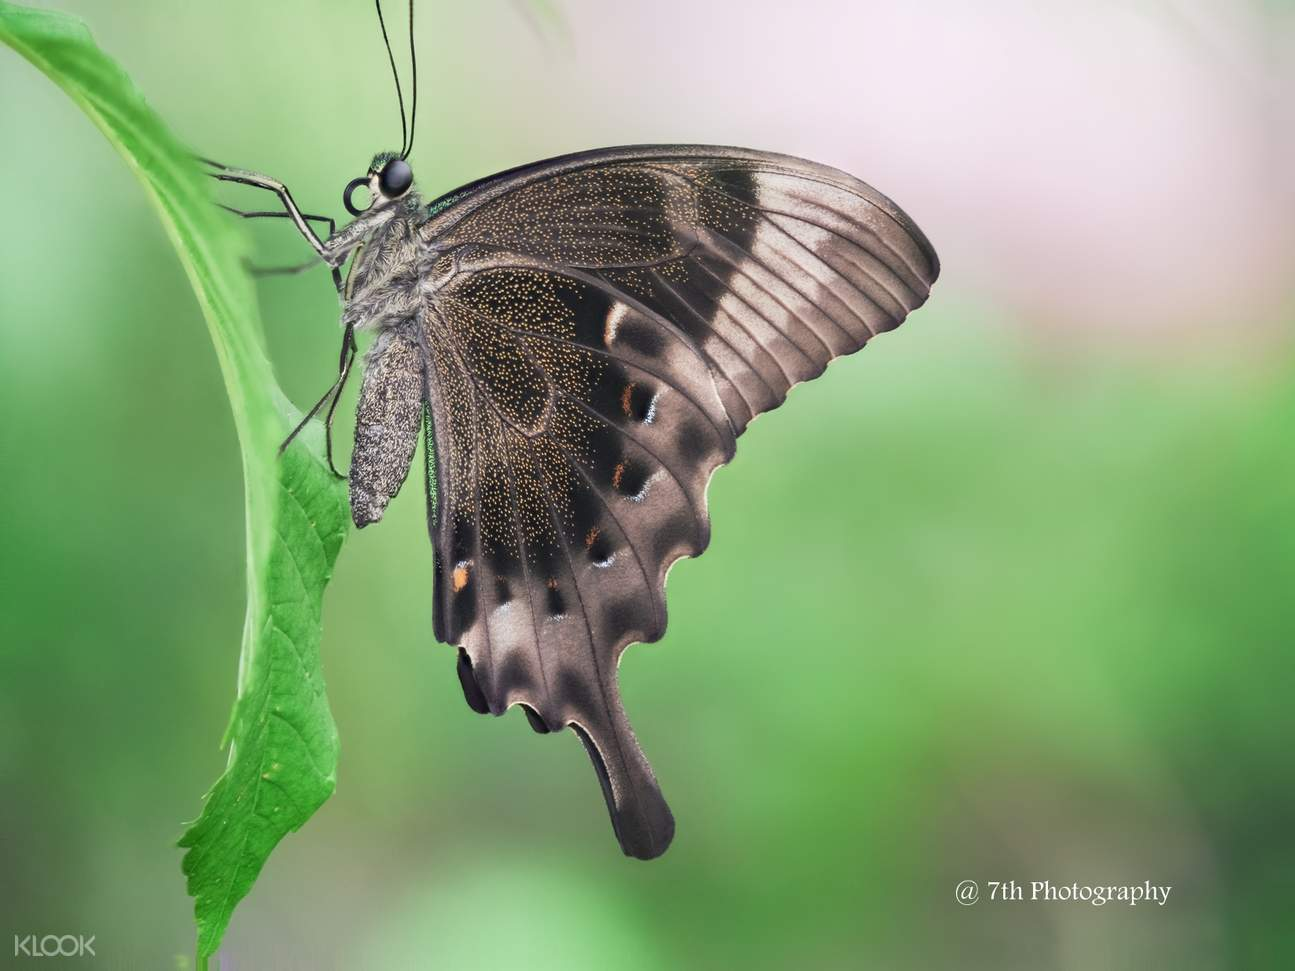 Catch butterfly species such as the swift peacock at the Butterfly Park & Insect Kingdom